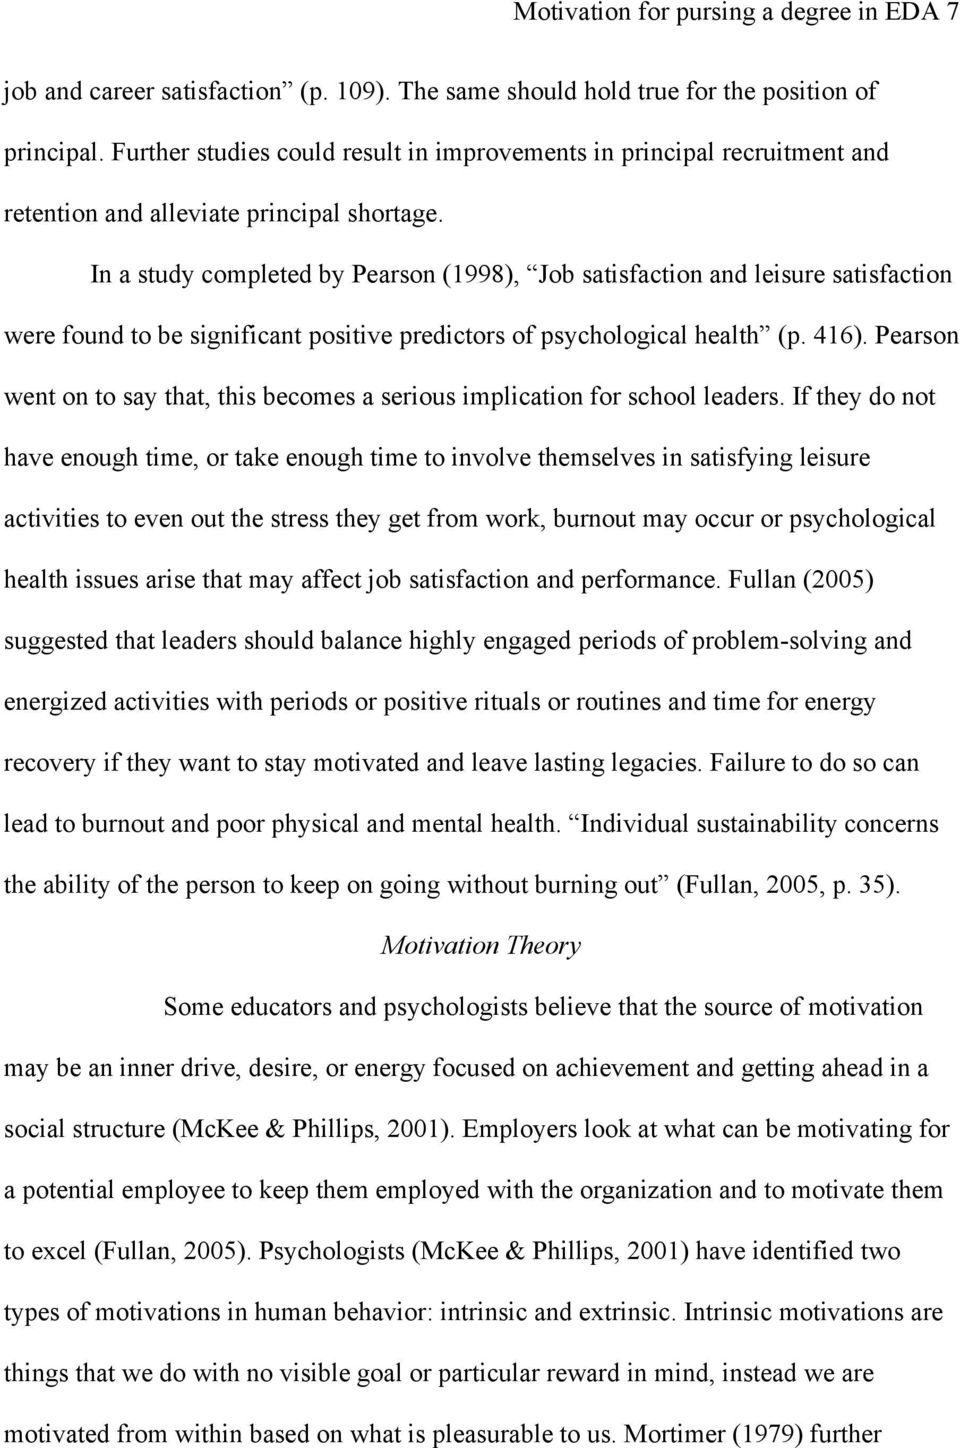 In a study completed by Pearson (1998), Job satisfaction and leisure satisfaction were found to be significant positive predictors of psychological health (p. 416).